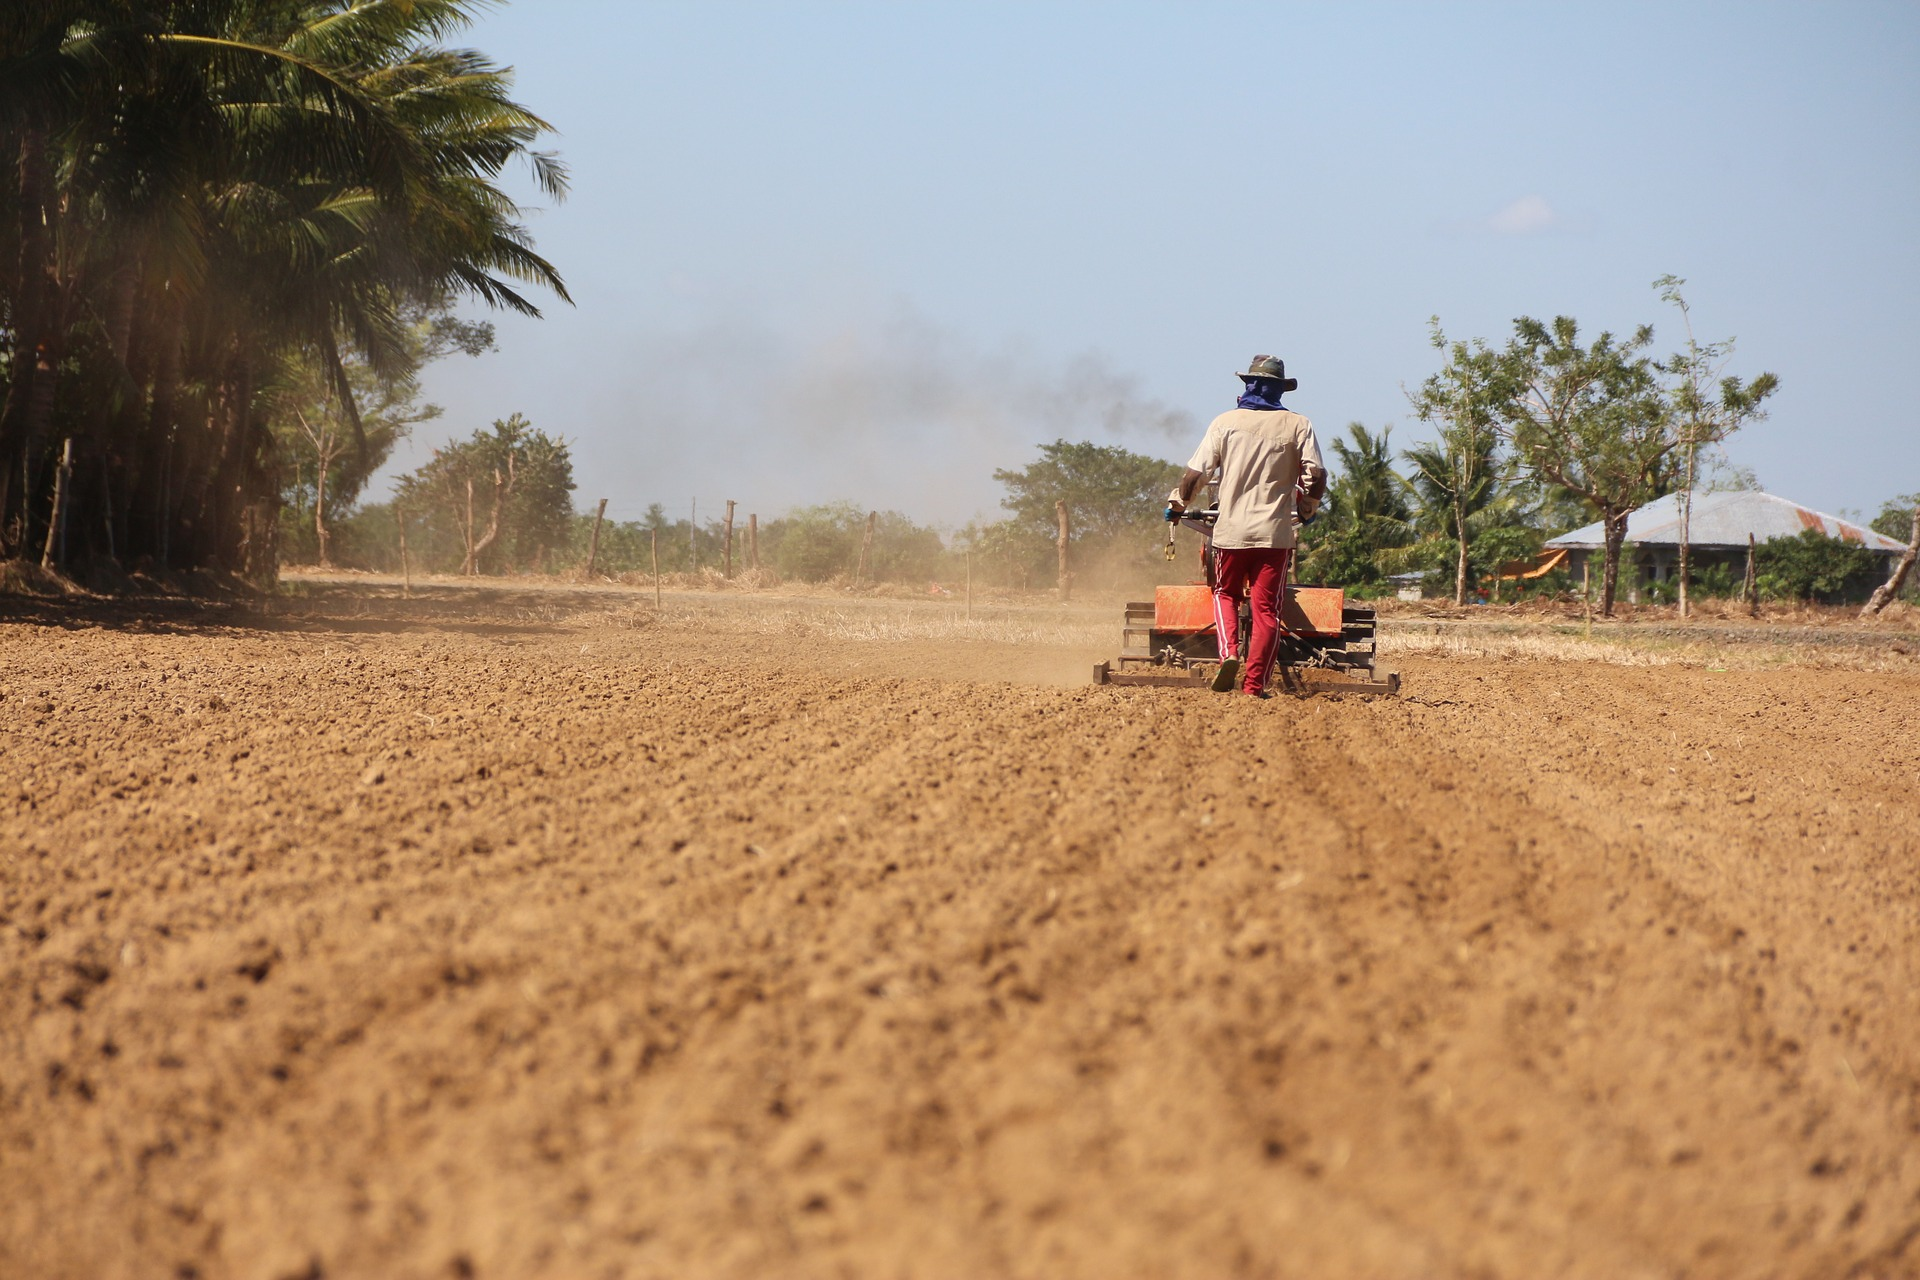 Study looks at land acquisitions' effect on climate change - ASU Now